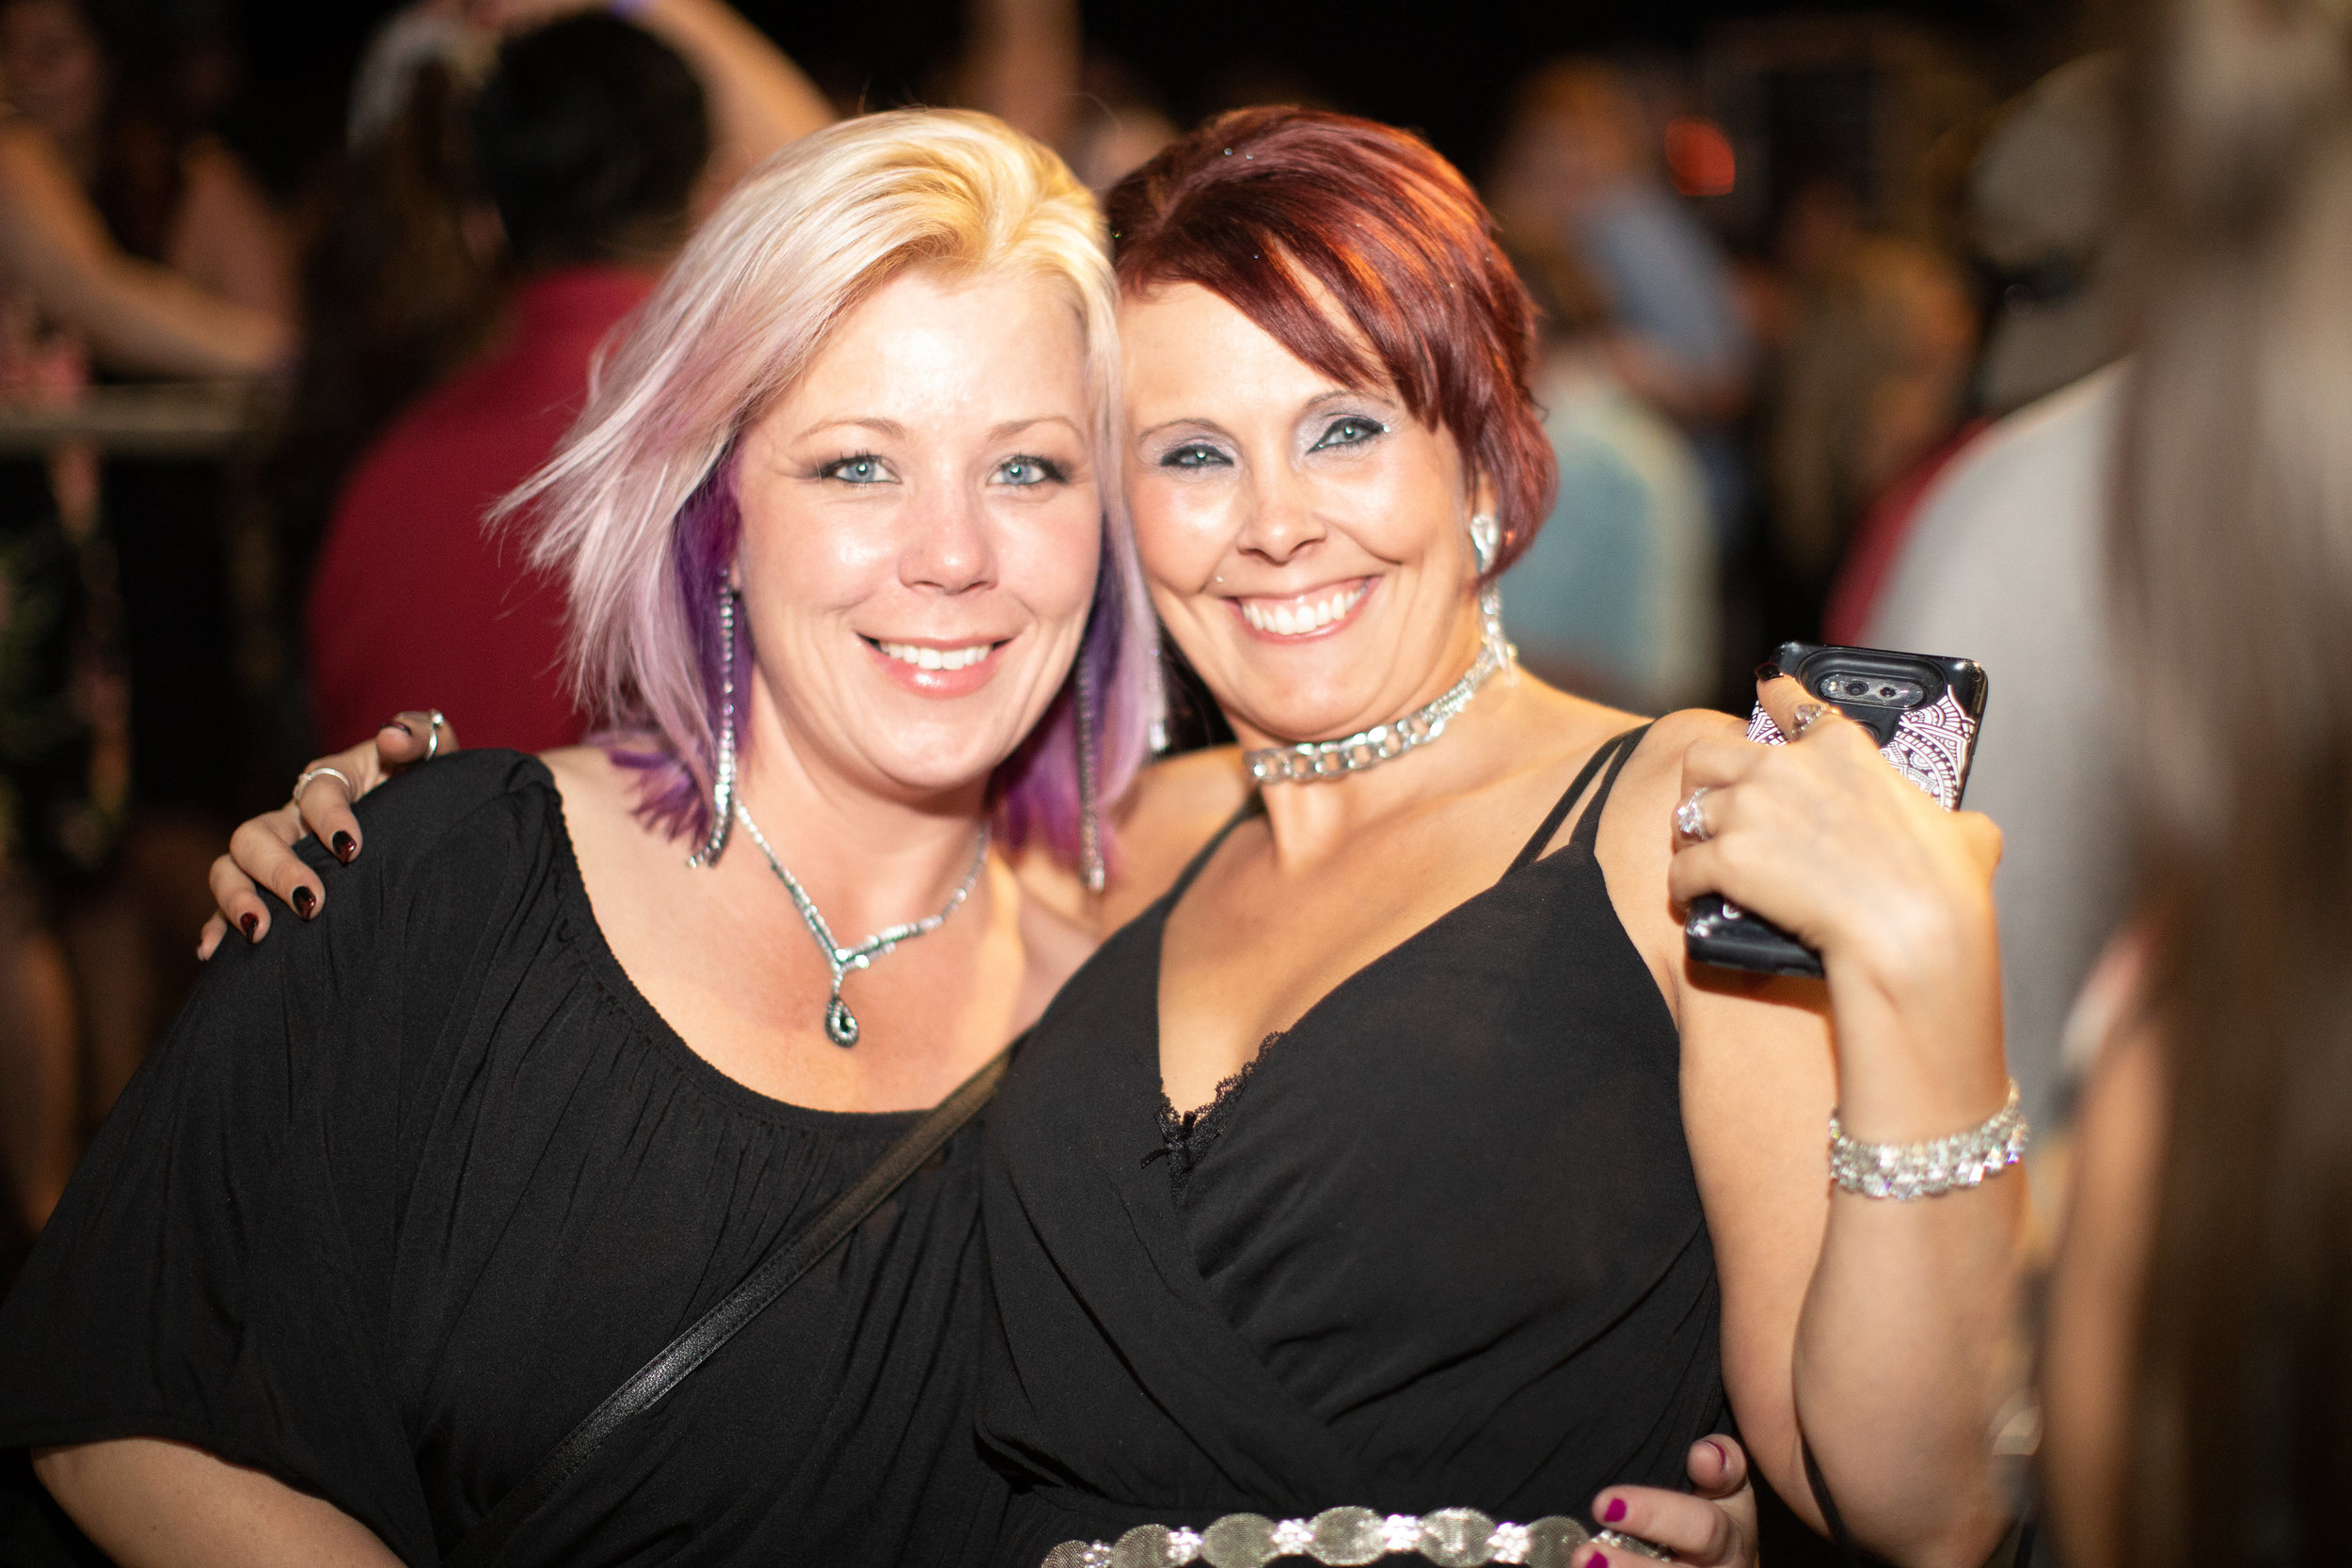 KDWB_StarParty_FlowEventGroup-294.jpg